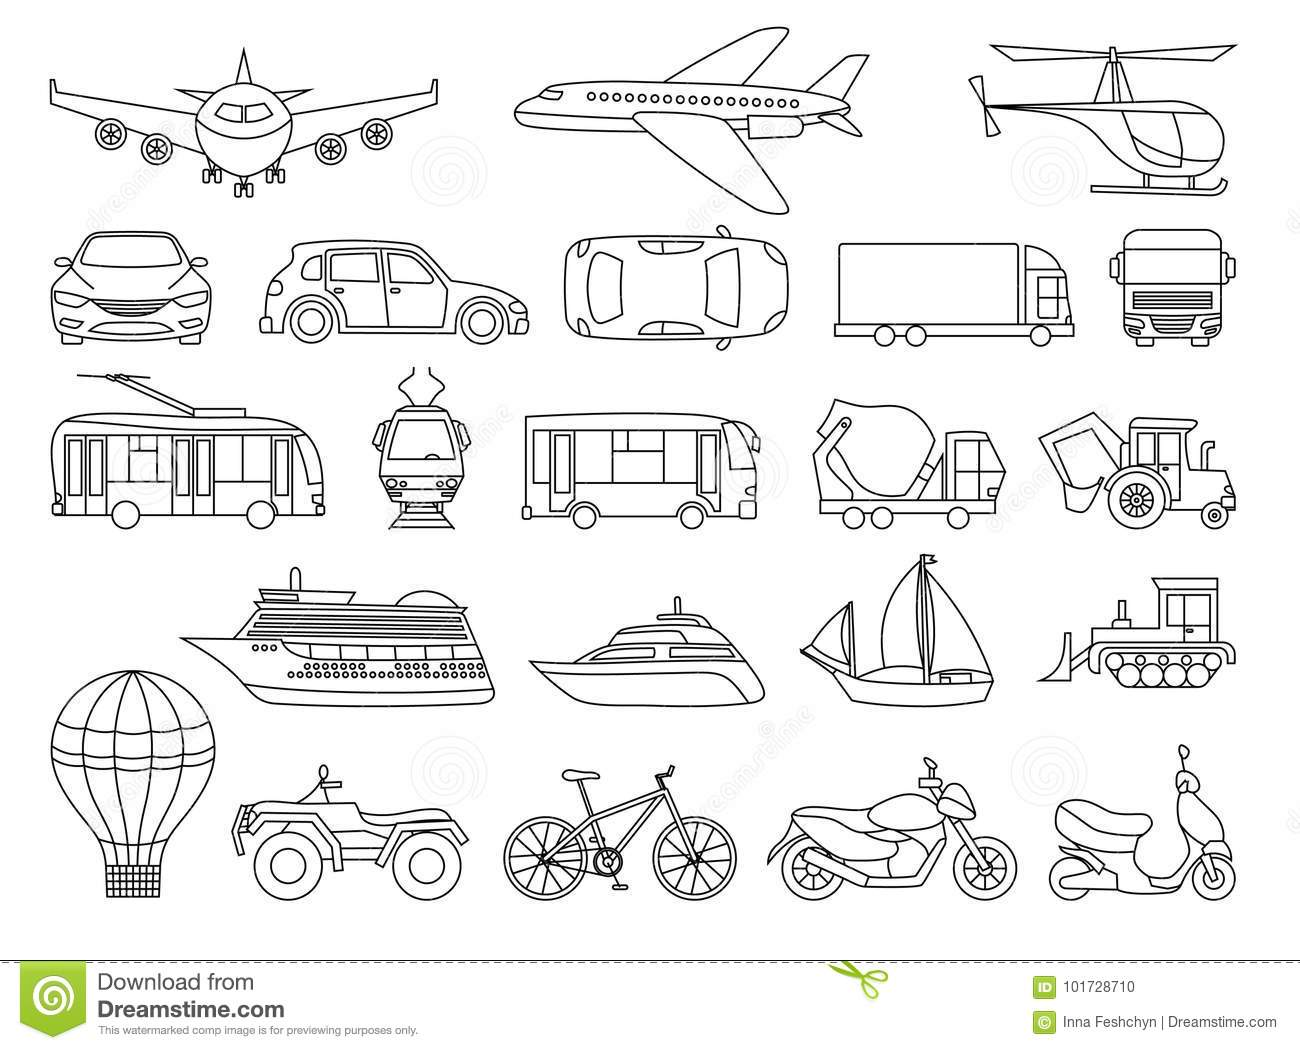 Toy Transport Set To Be Colored Coloring Book To Educate